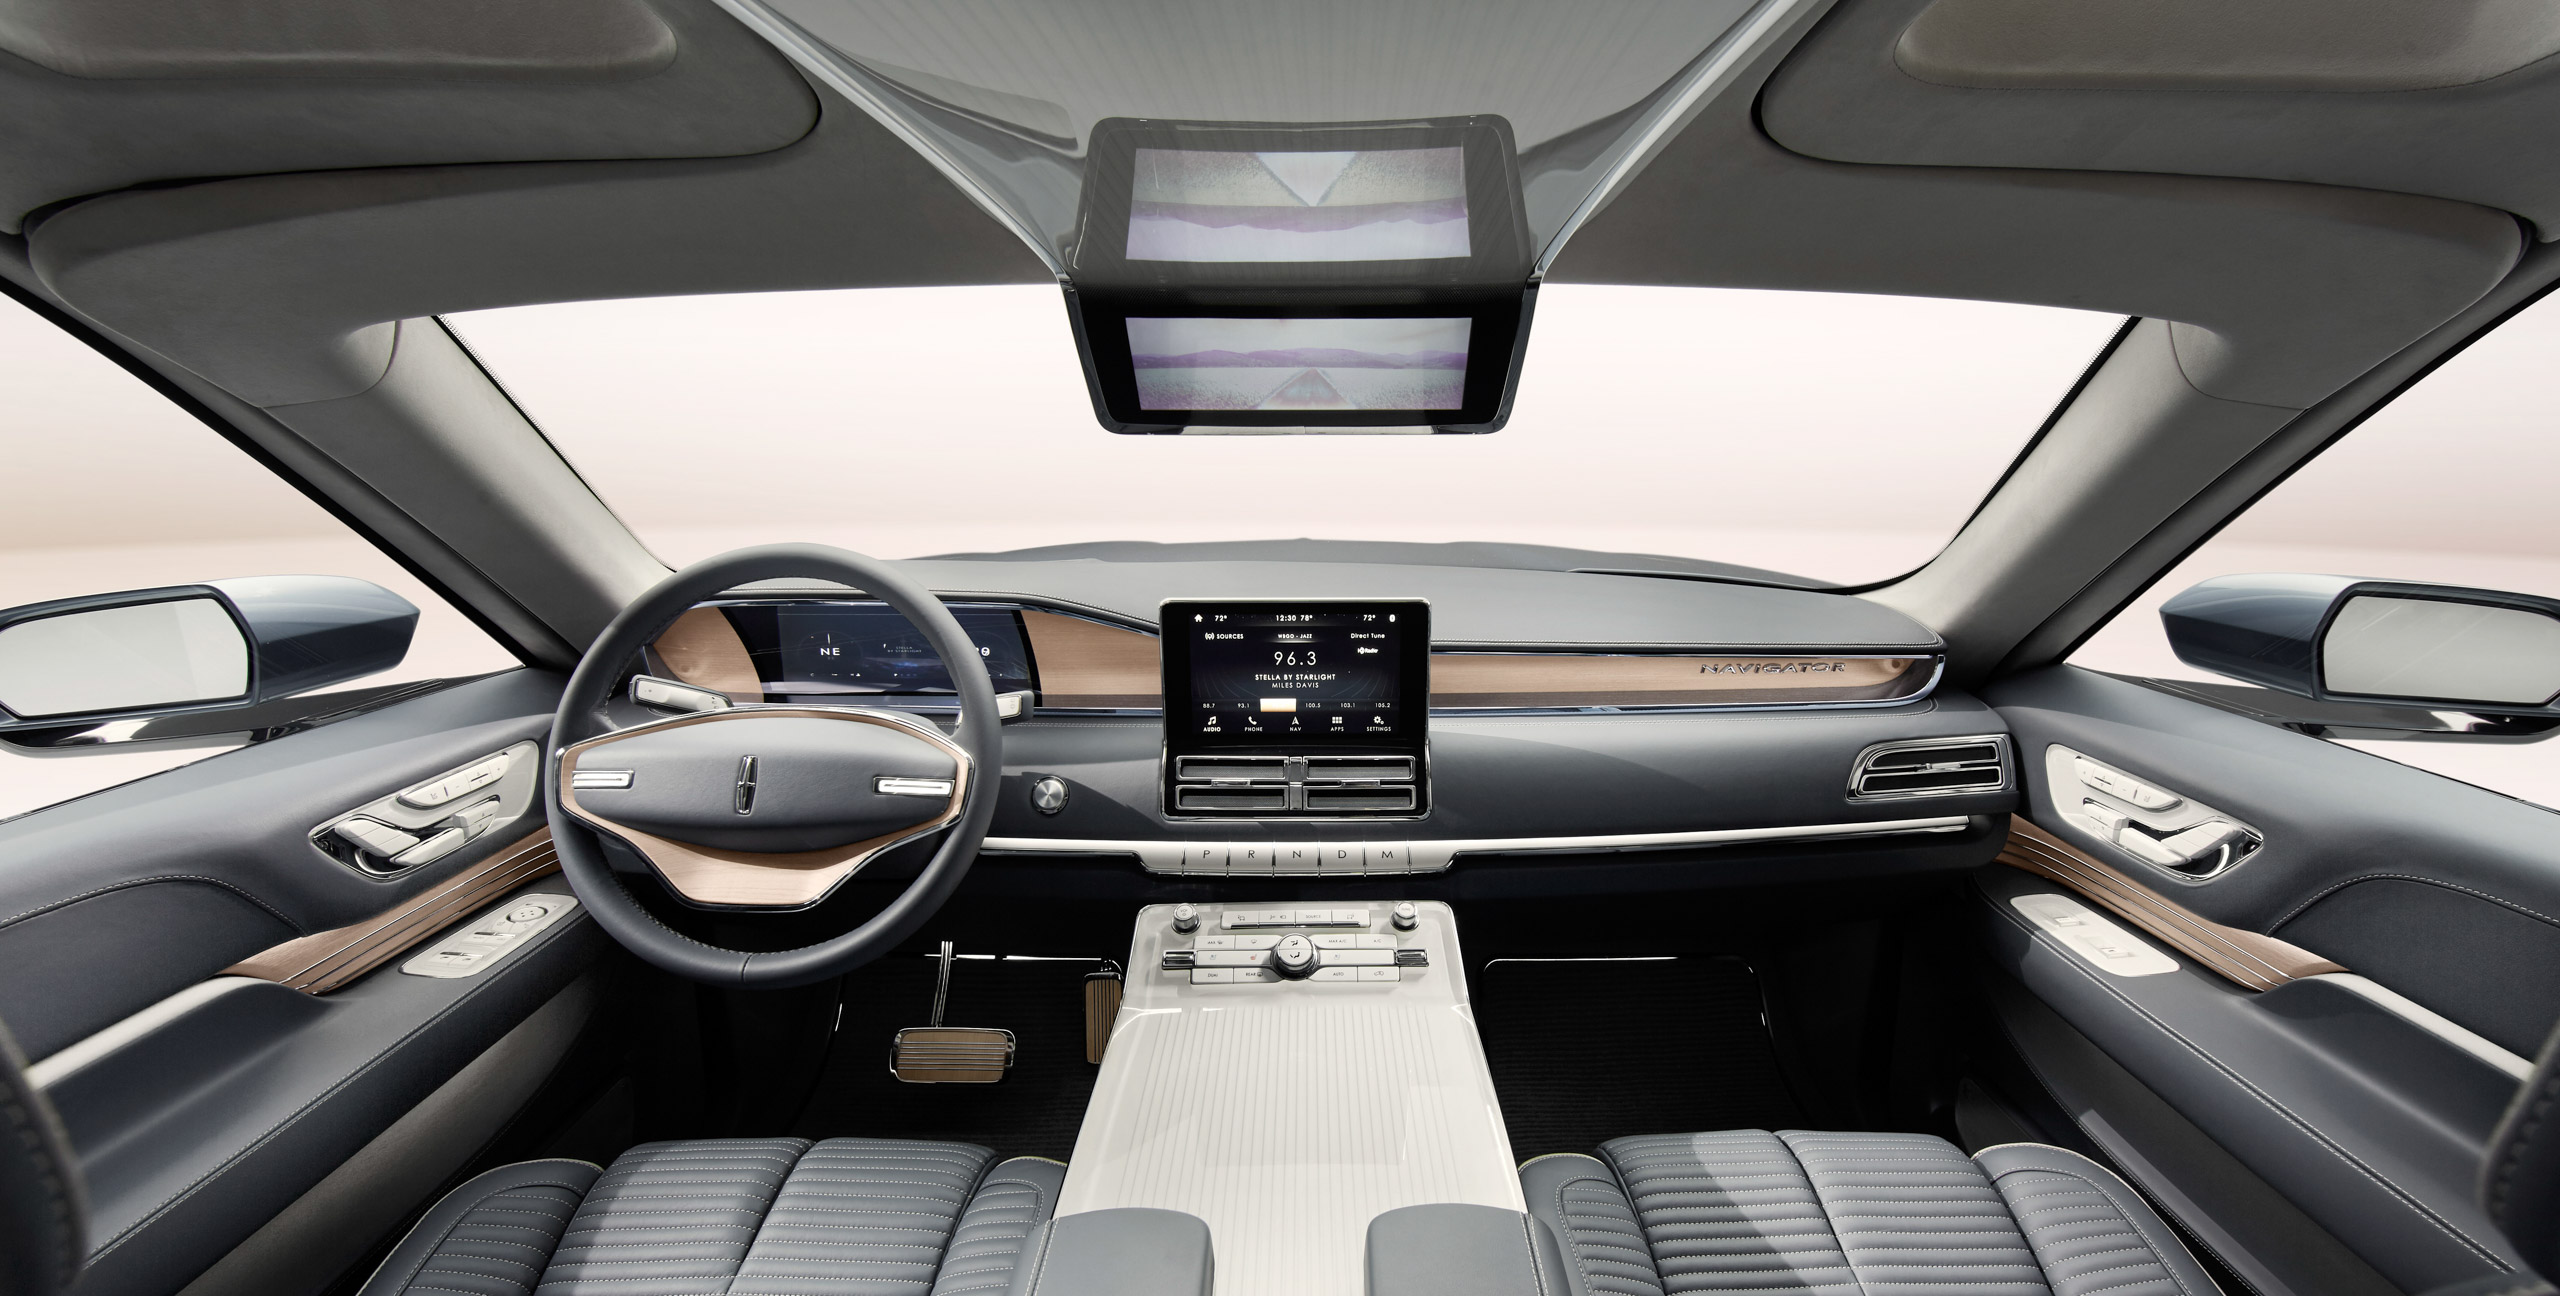 Lincoln Navigator Concept Breaks Cover In New York Paul Interiors Inside Ideas Interiors design about Everything [magnanprojects.com]